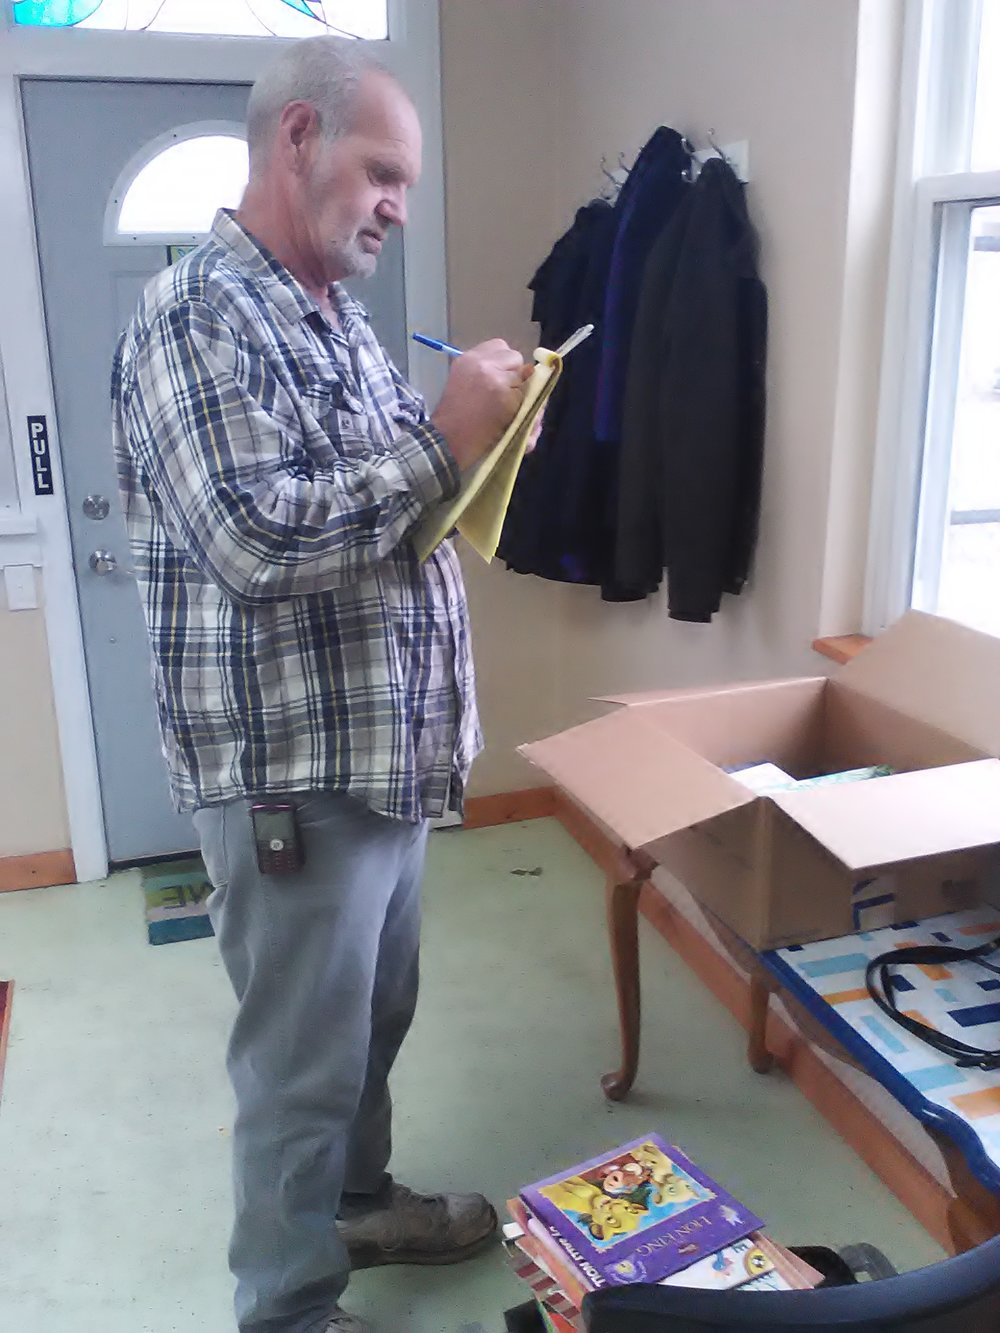 Mark prepares the Little Free Library books.